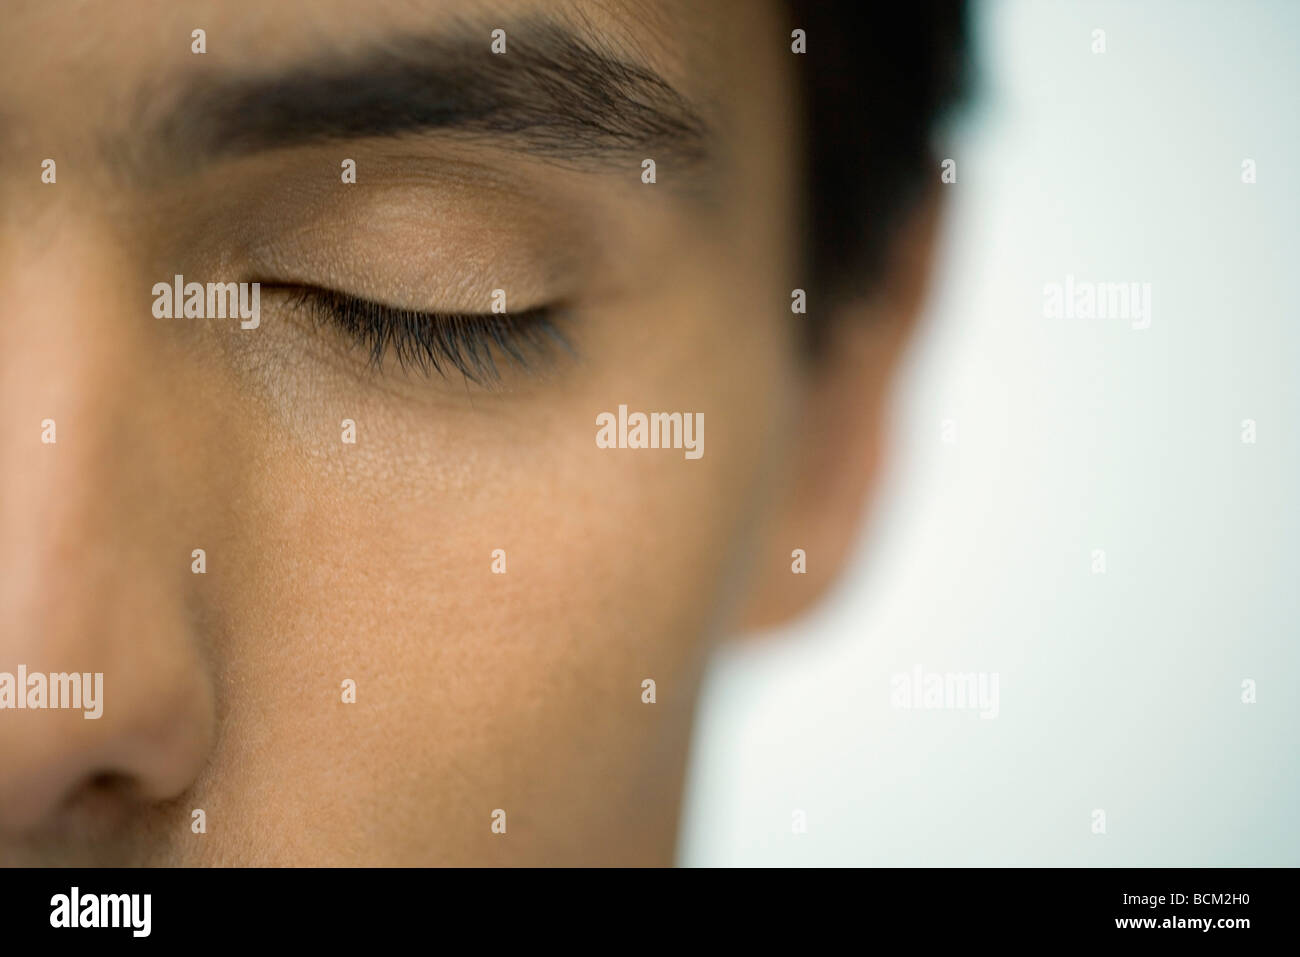 Man with eye closed, extreme close-up - Stock Image